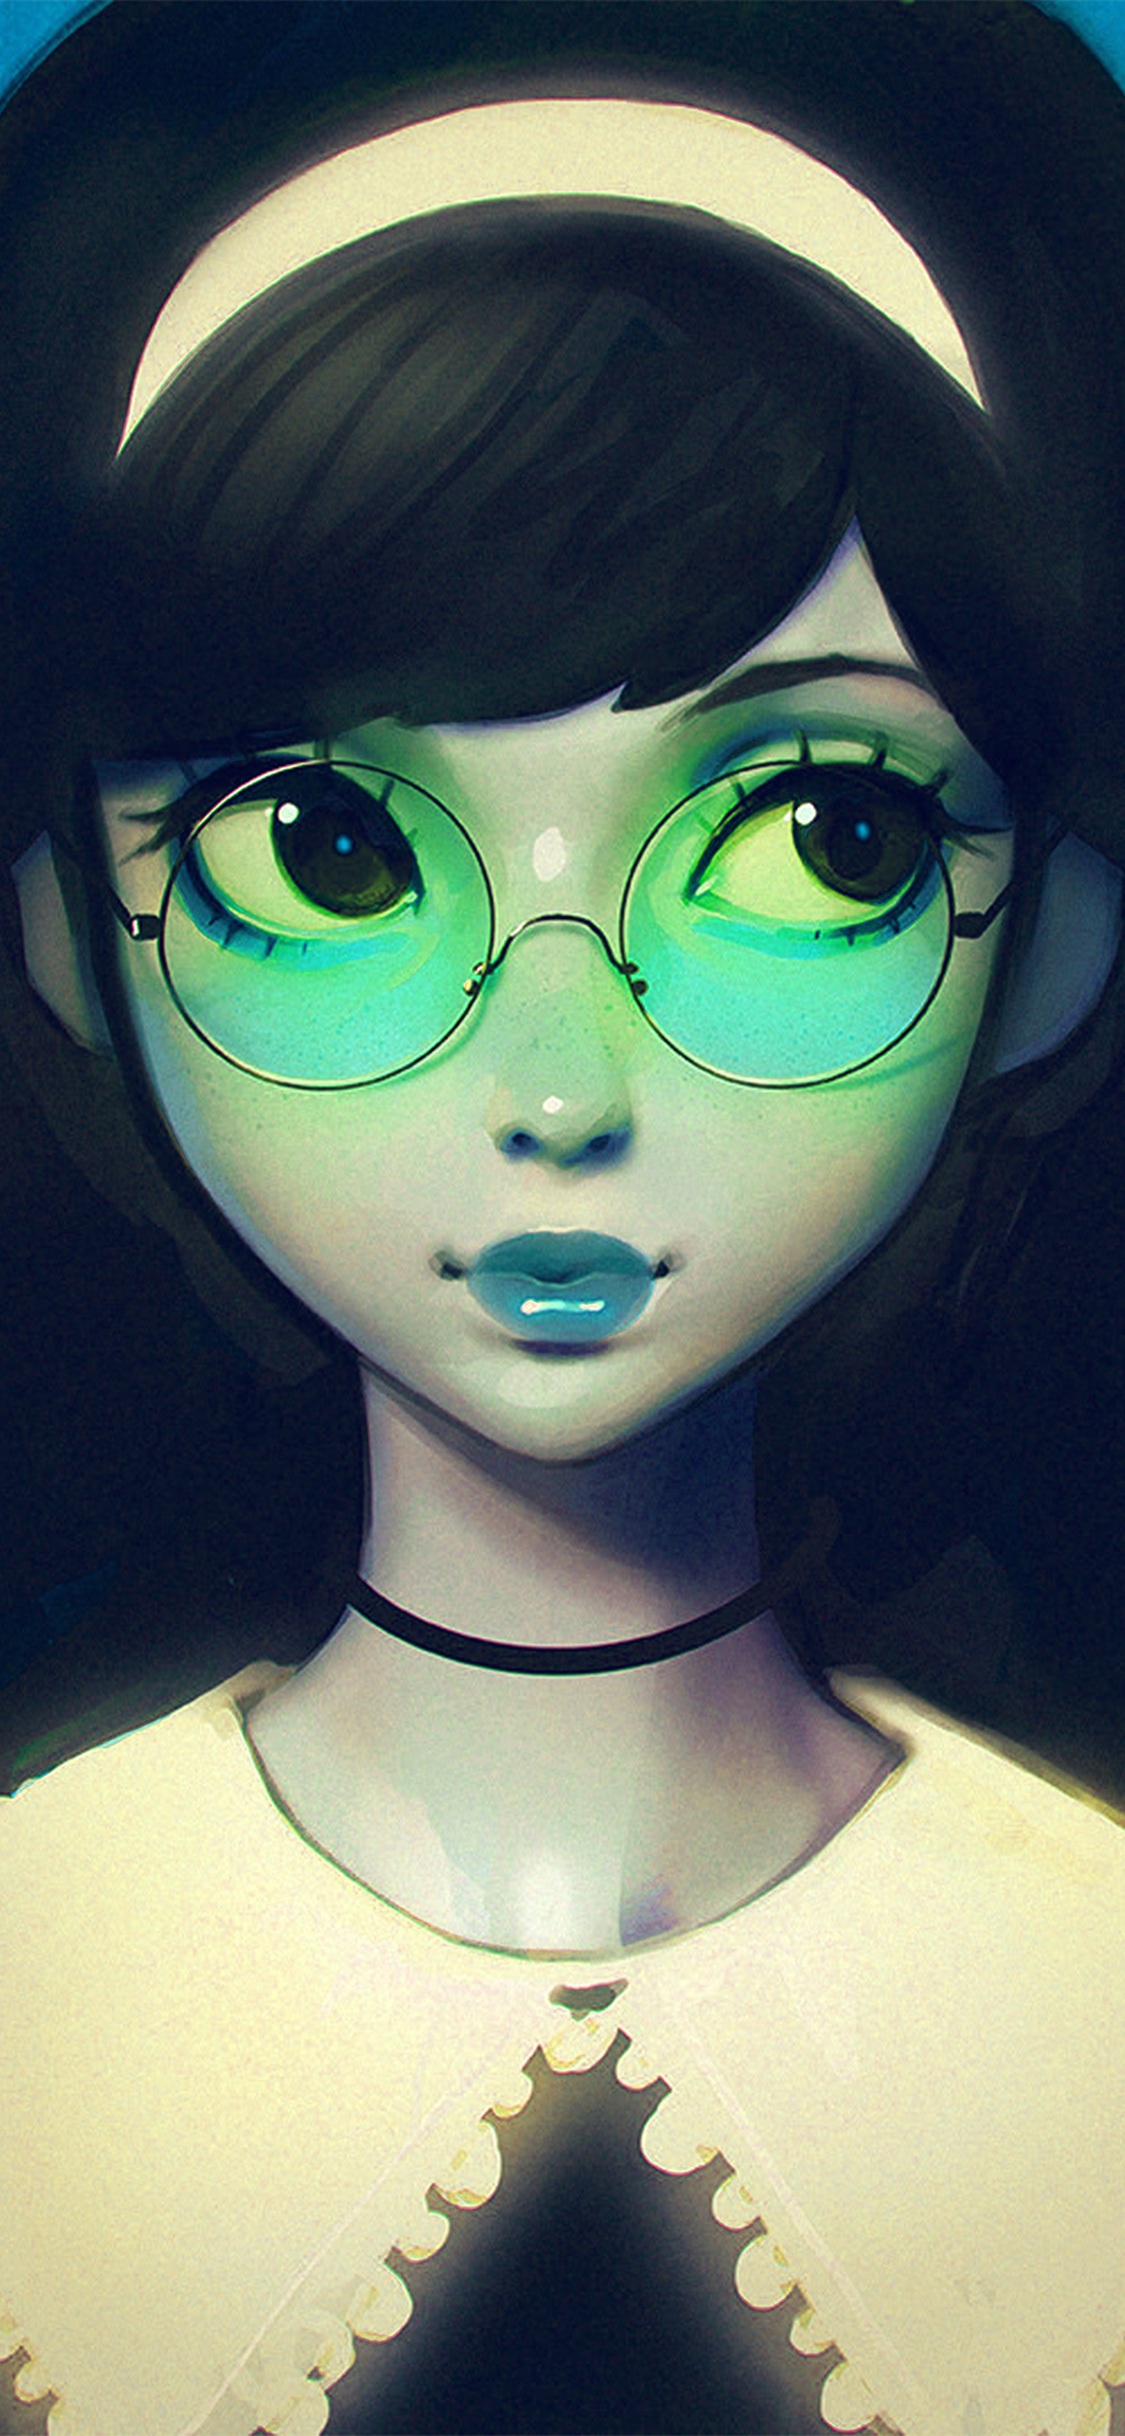 iPhonexpapers.com-Apple-iPhone-wallpaper-ax76-ilya-kuvshinov-girl-illustration-art-blue